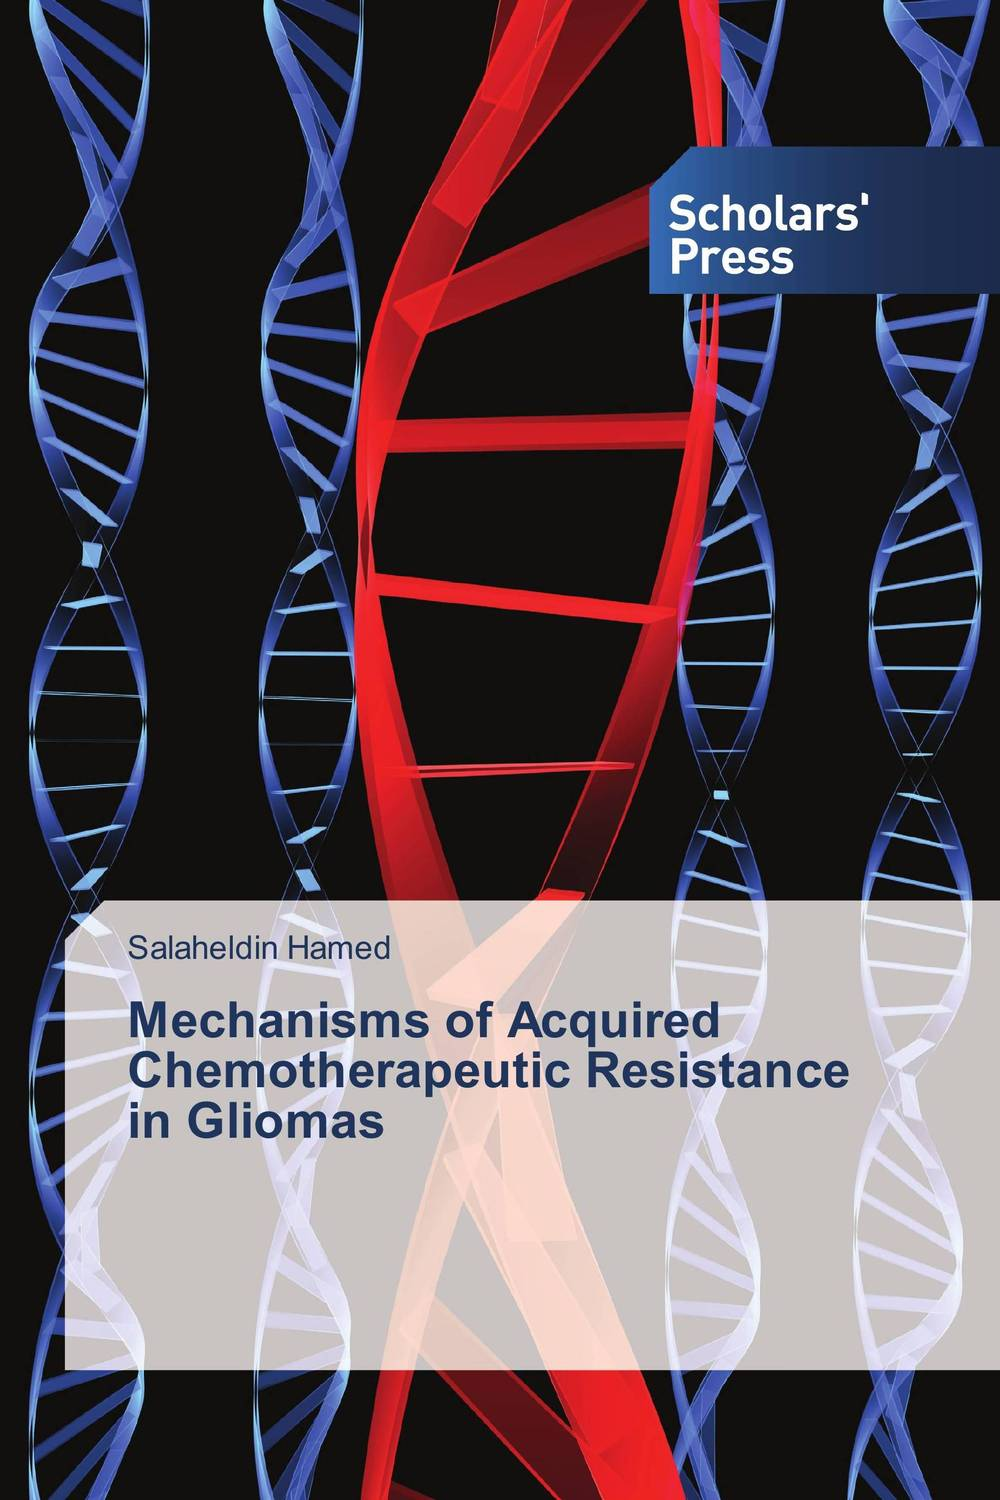 Mechanisms of Acquired Chemotherapeutic Resistance in Gliomas ravi maddaly madhumitha haridoss and sai keerthana wuppalapati aggregates of cell lines on agarose hydrogels